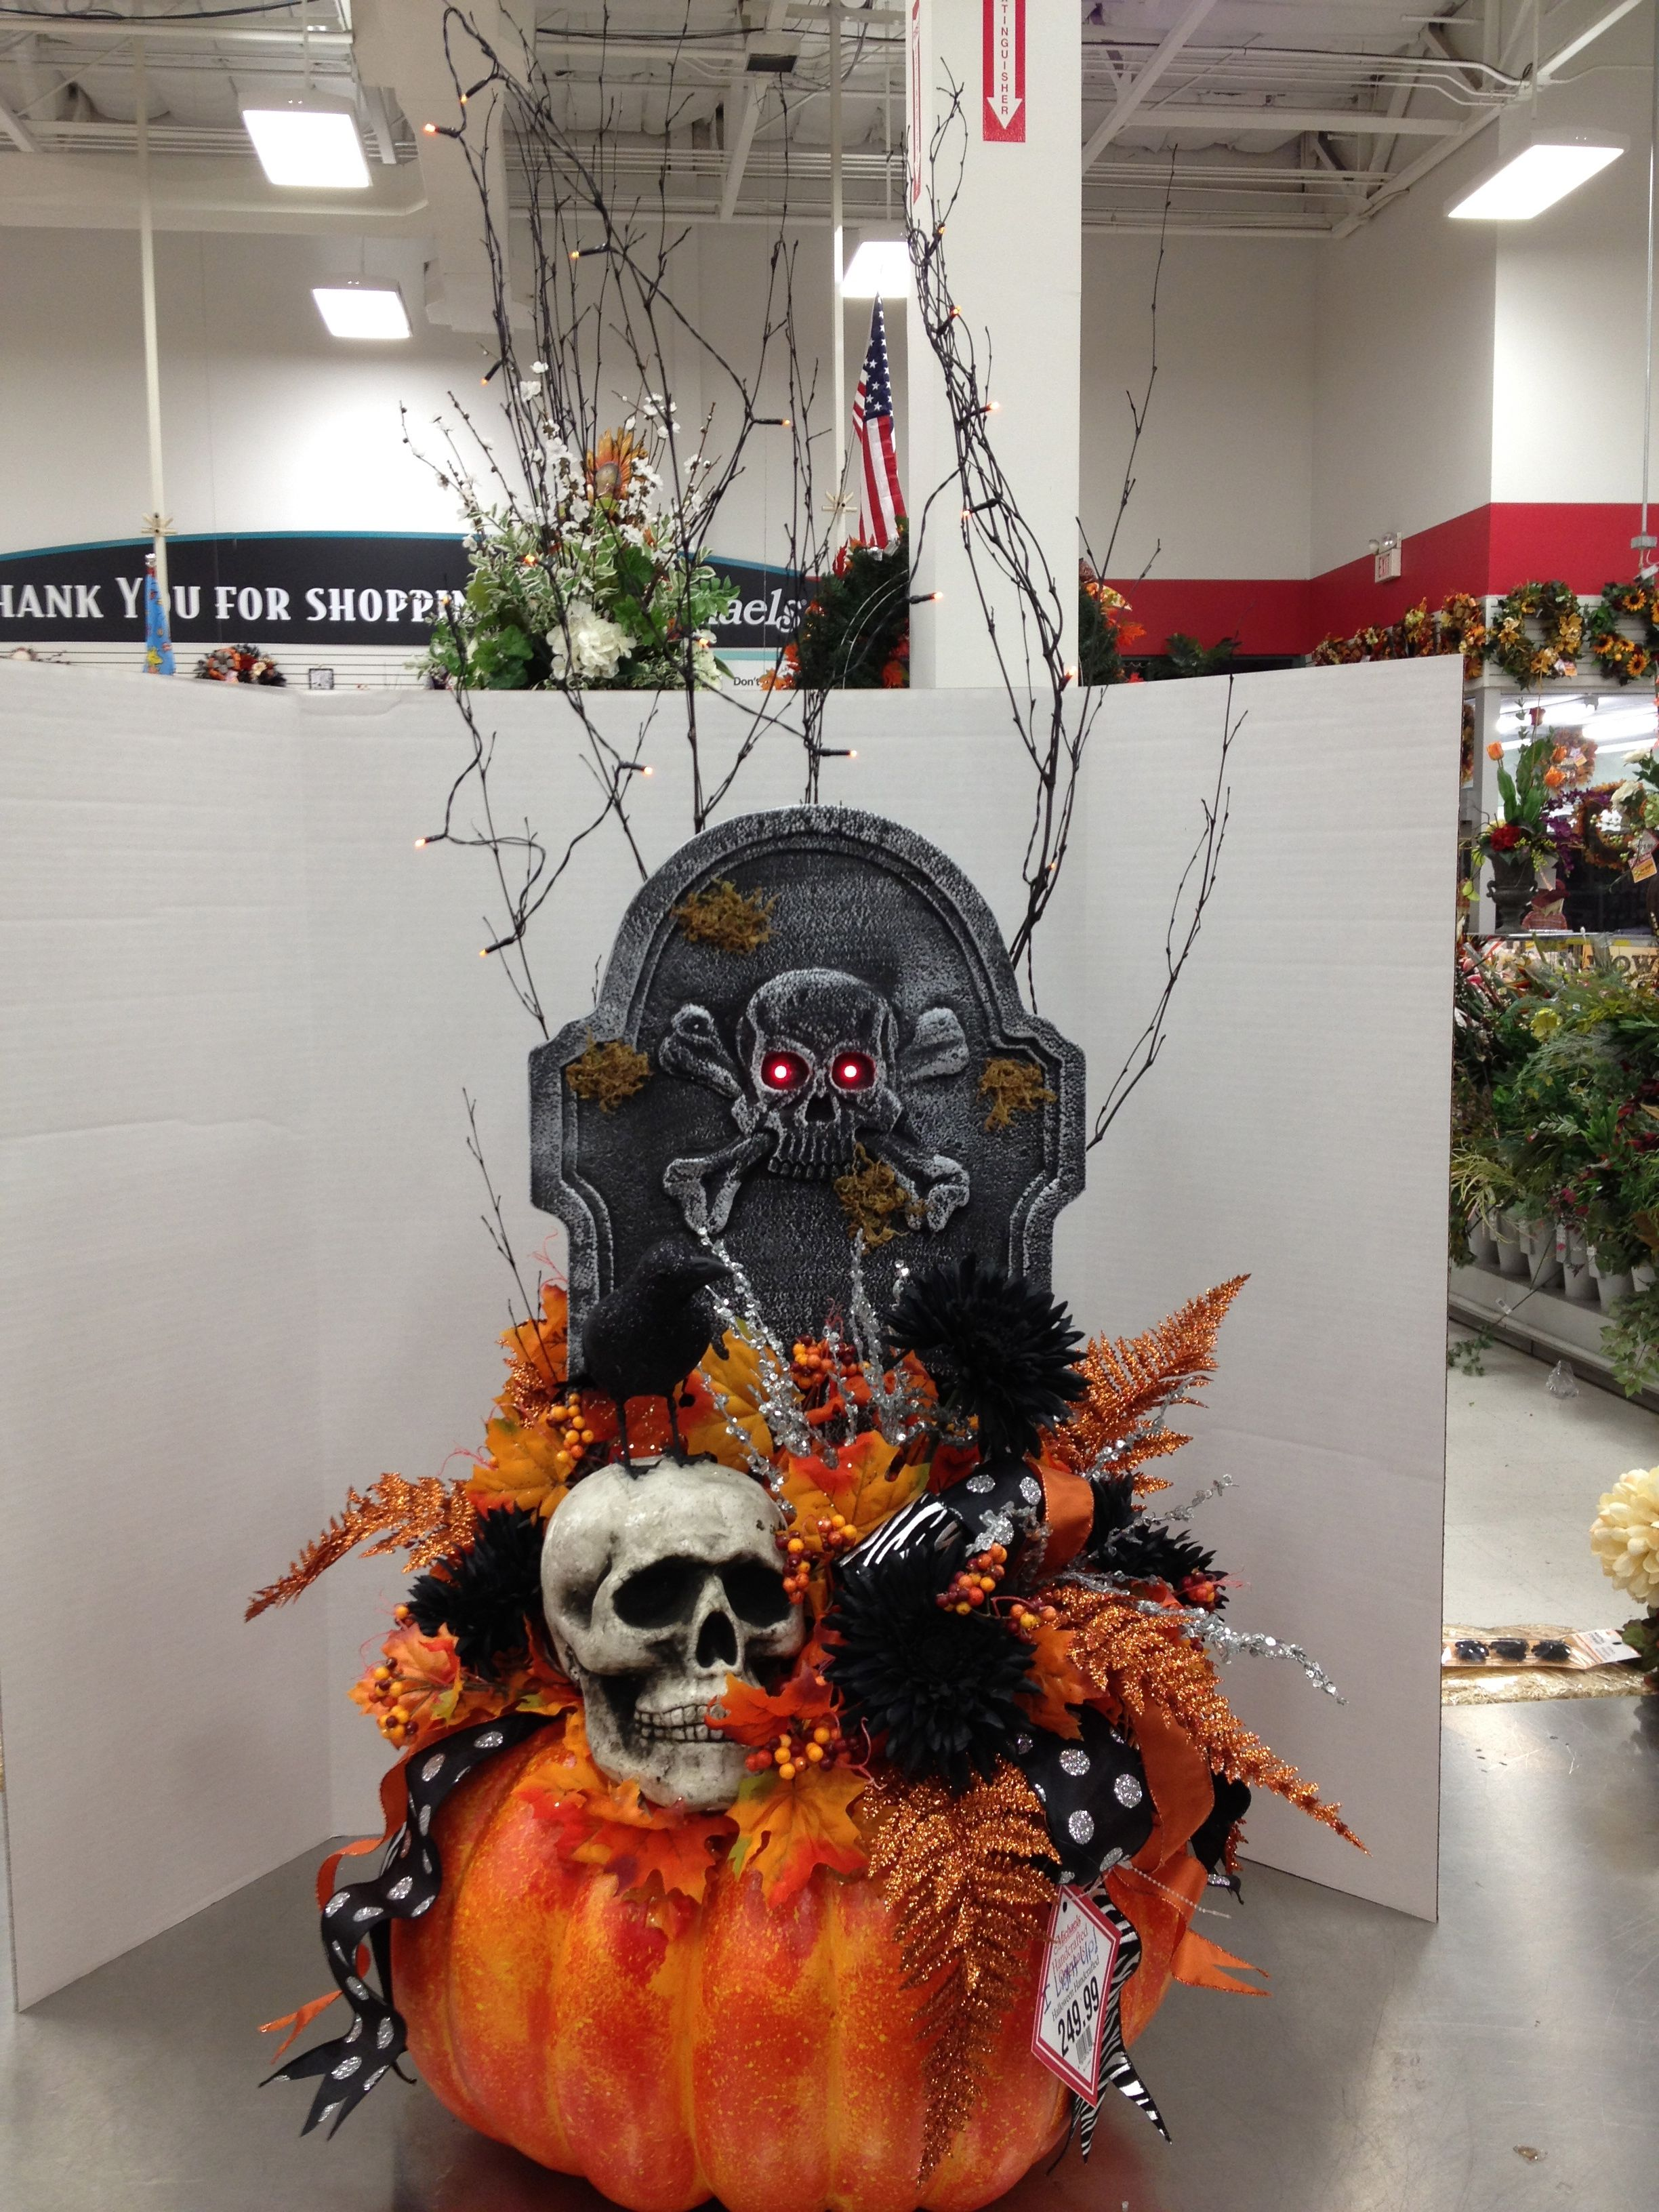 Halloween Lit Entry way or Patio Greeter By Christian Rebollo My - michaels halloween decorations